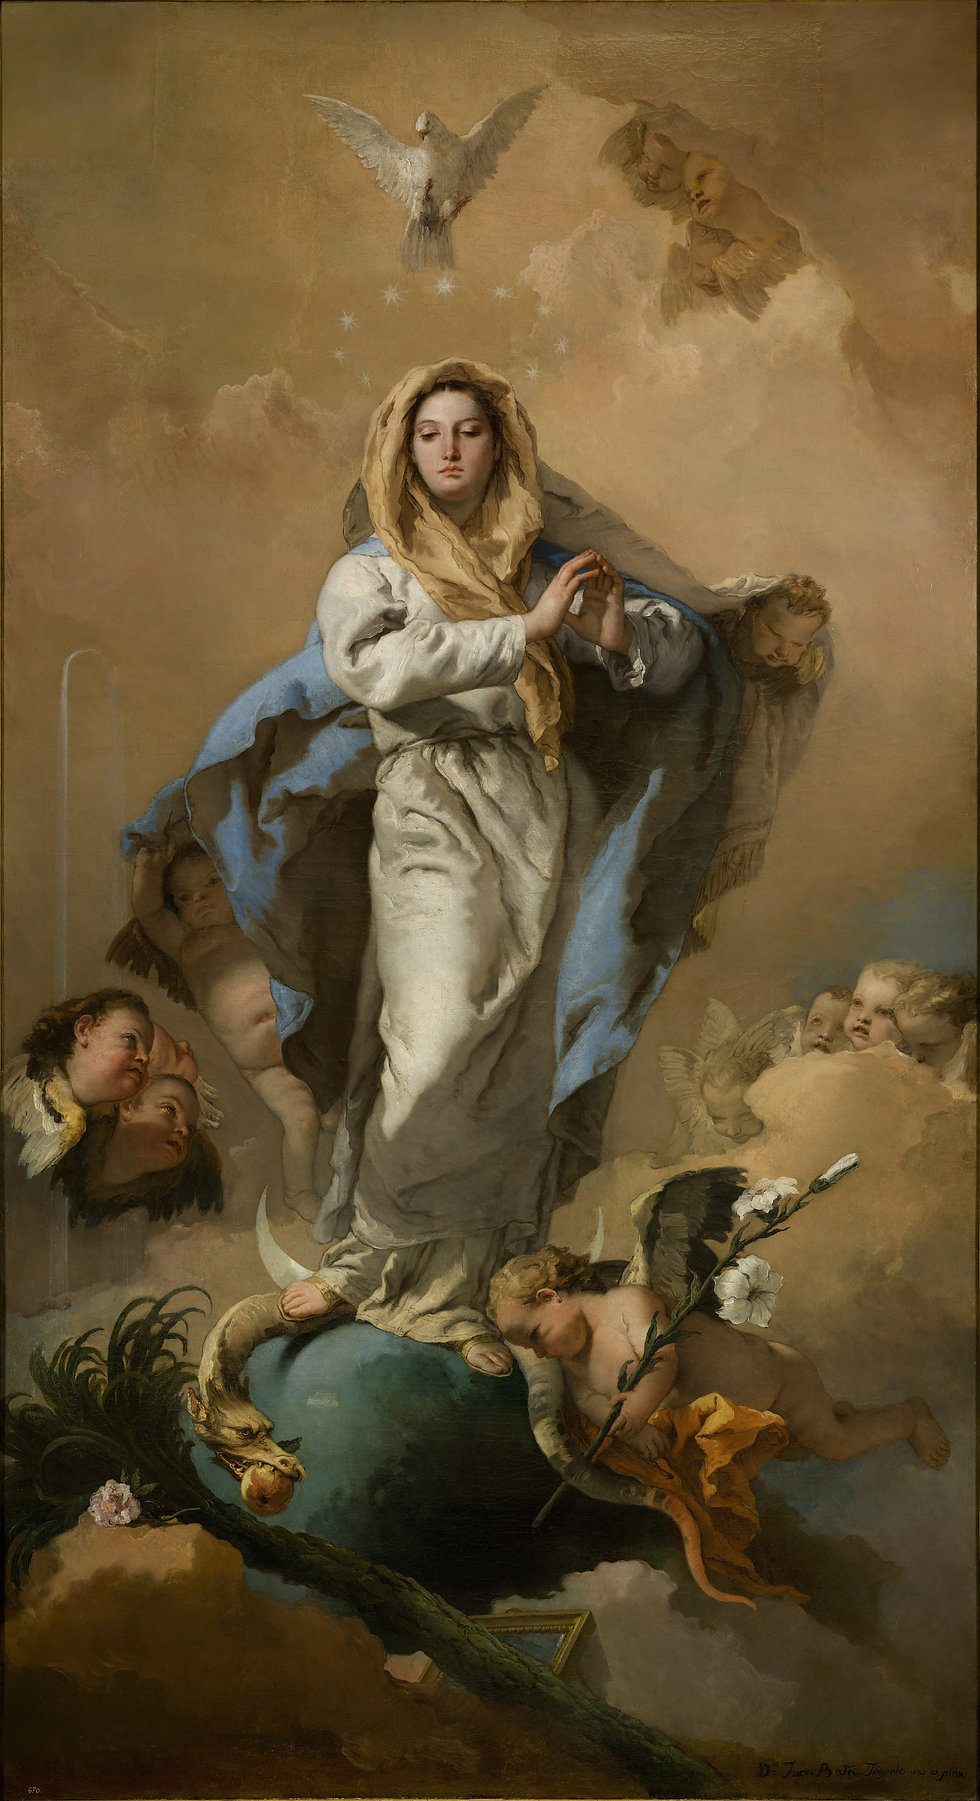 4096px-The_Immaculate_Conception,_by_Gio